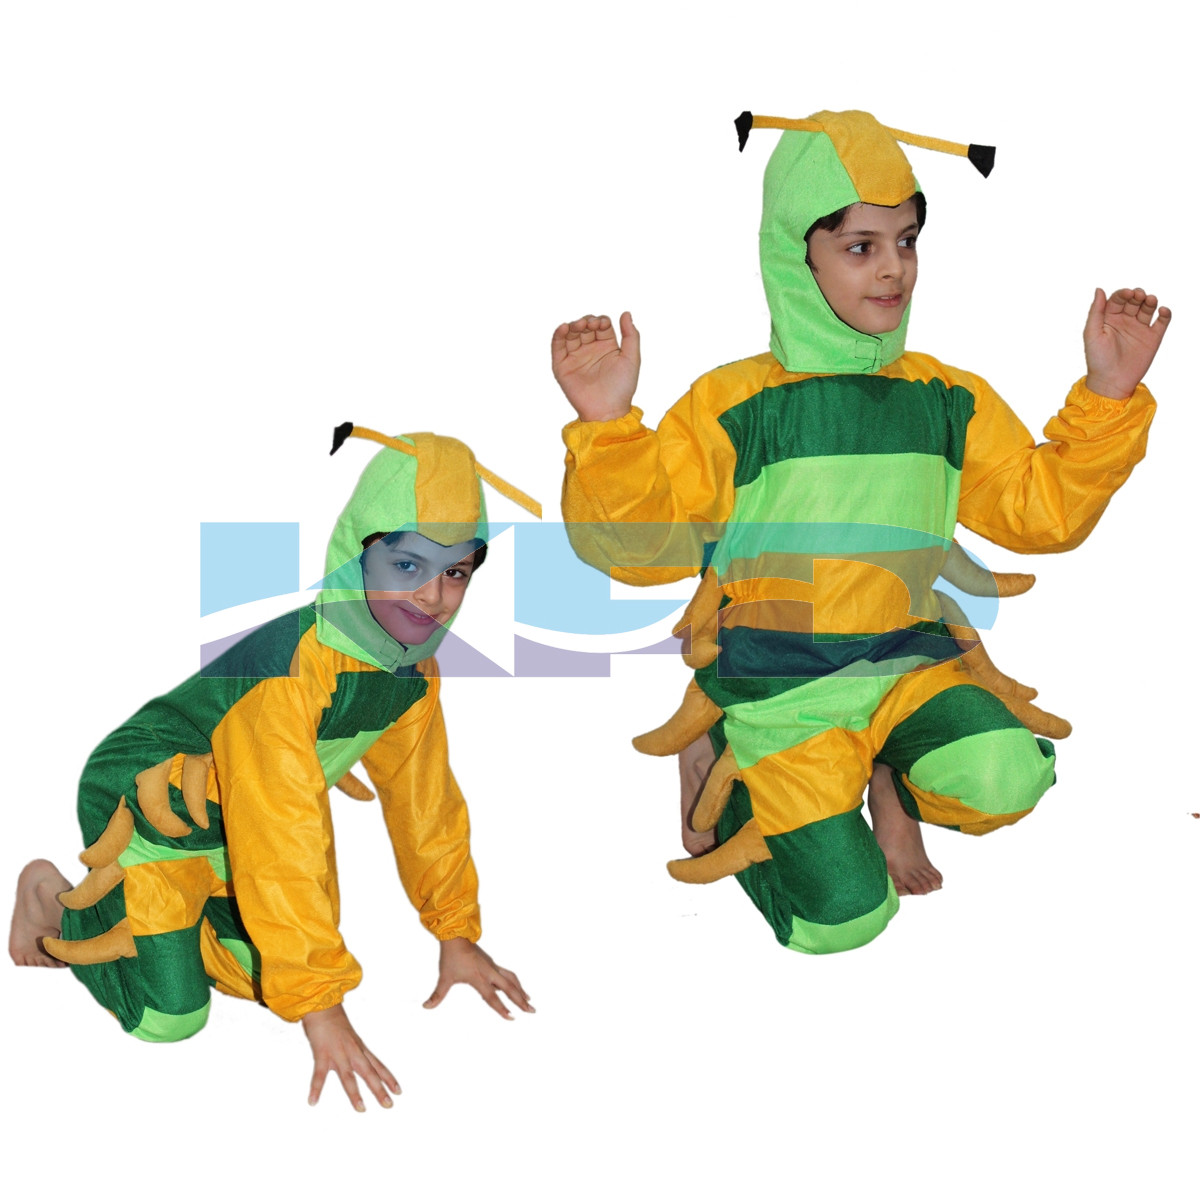 Caterpillar fancy dress for kids,Insect costume for School Annual function/Theme Party/Competition/Stage Shows Dress